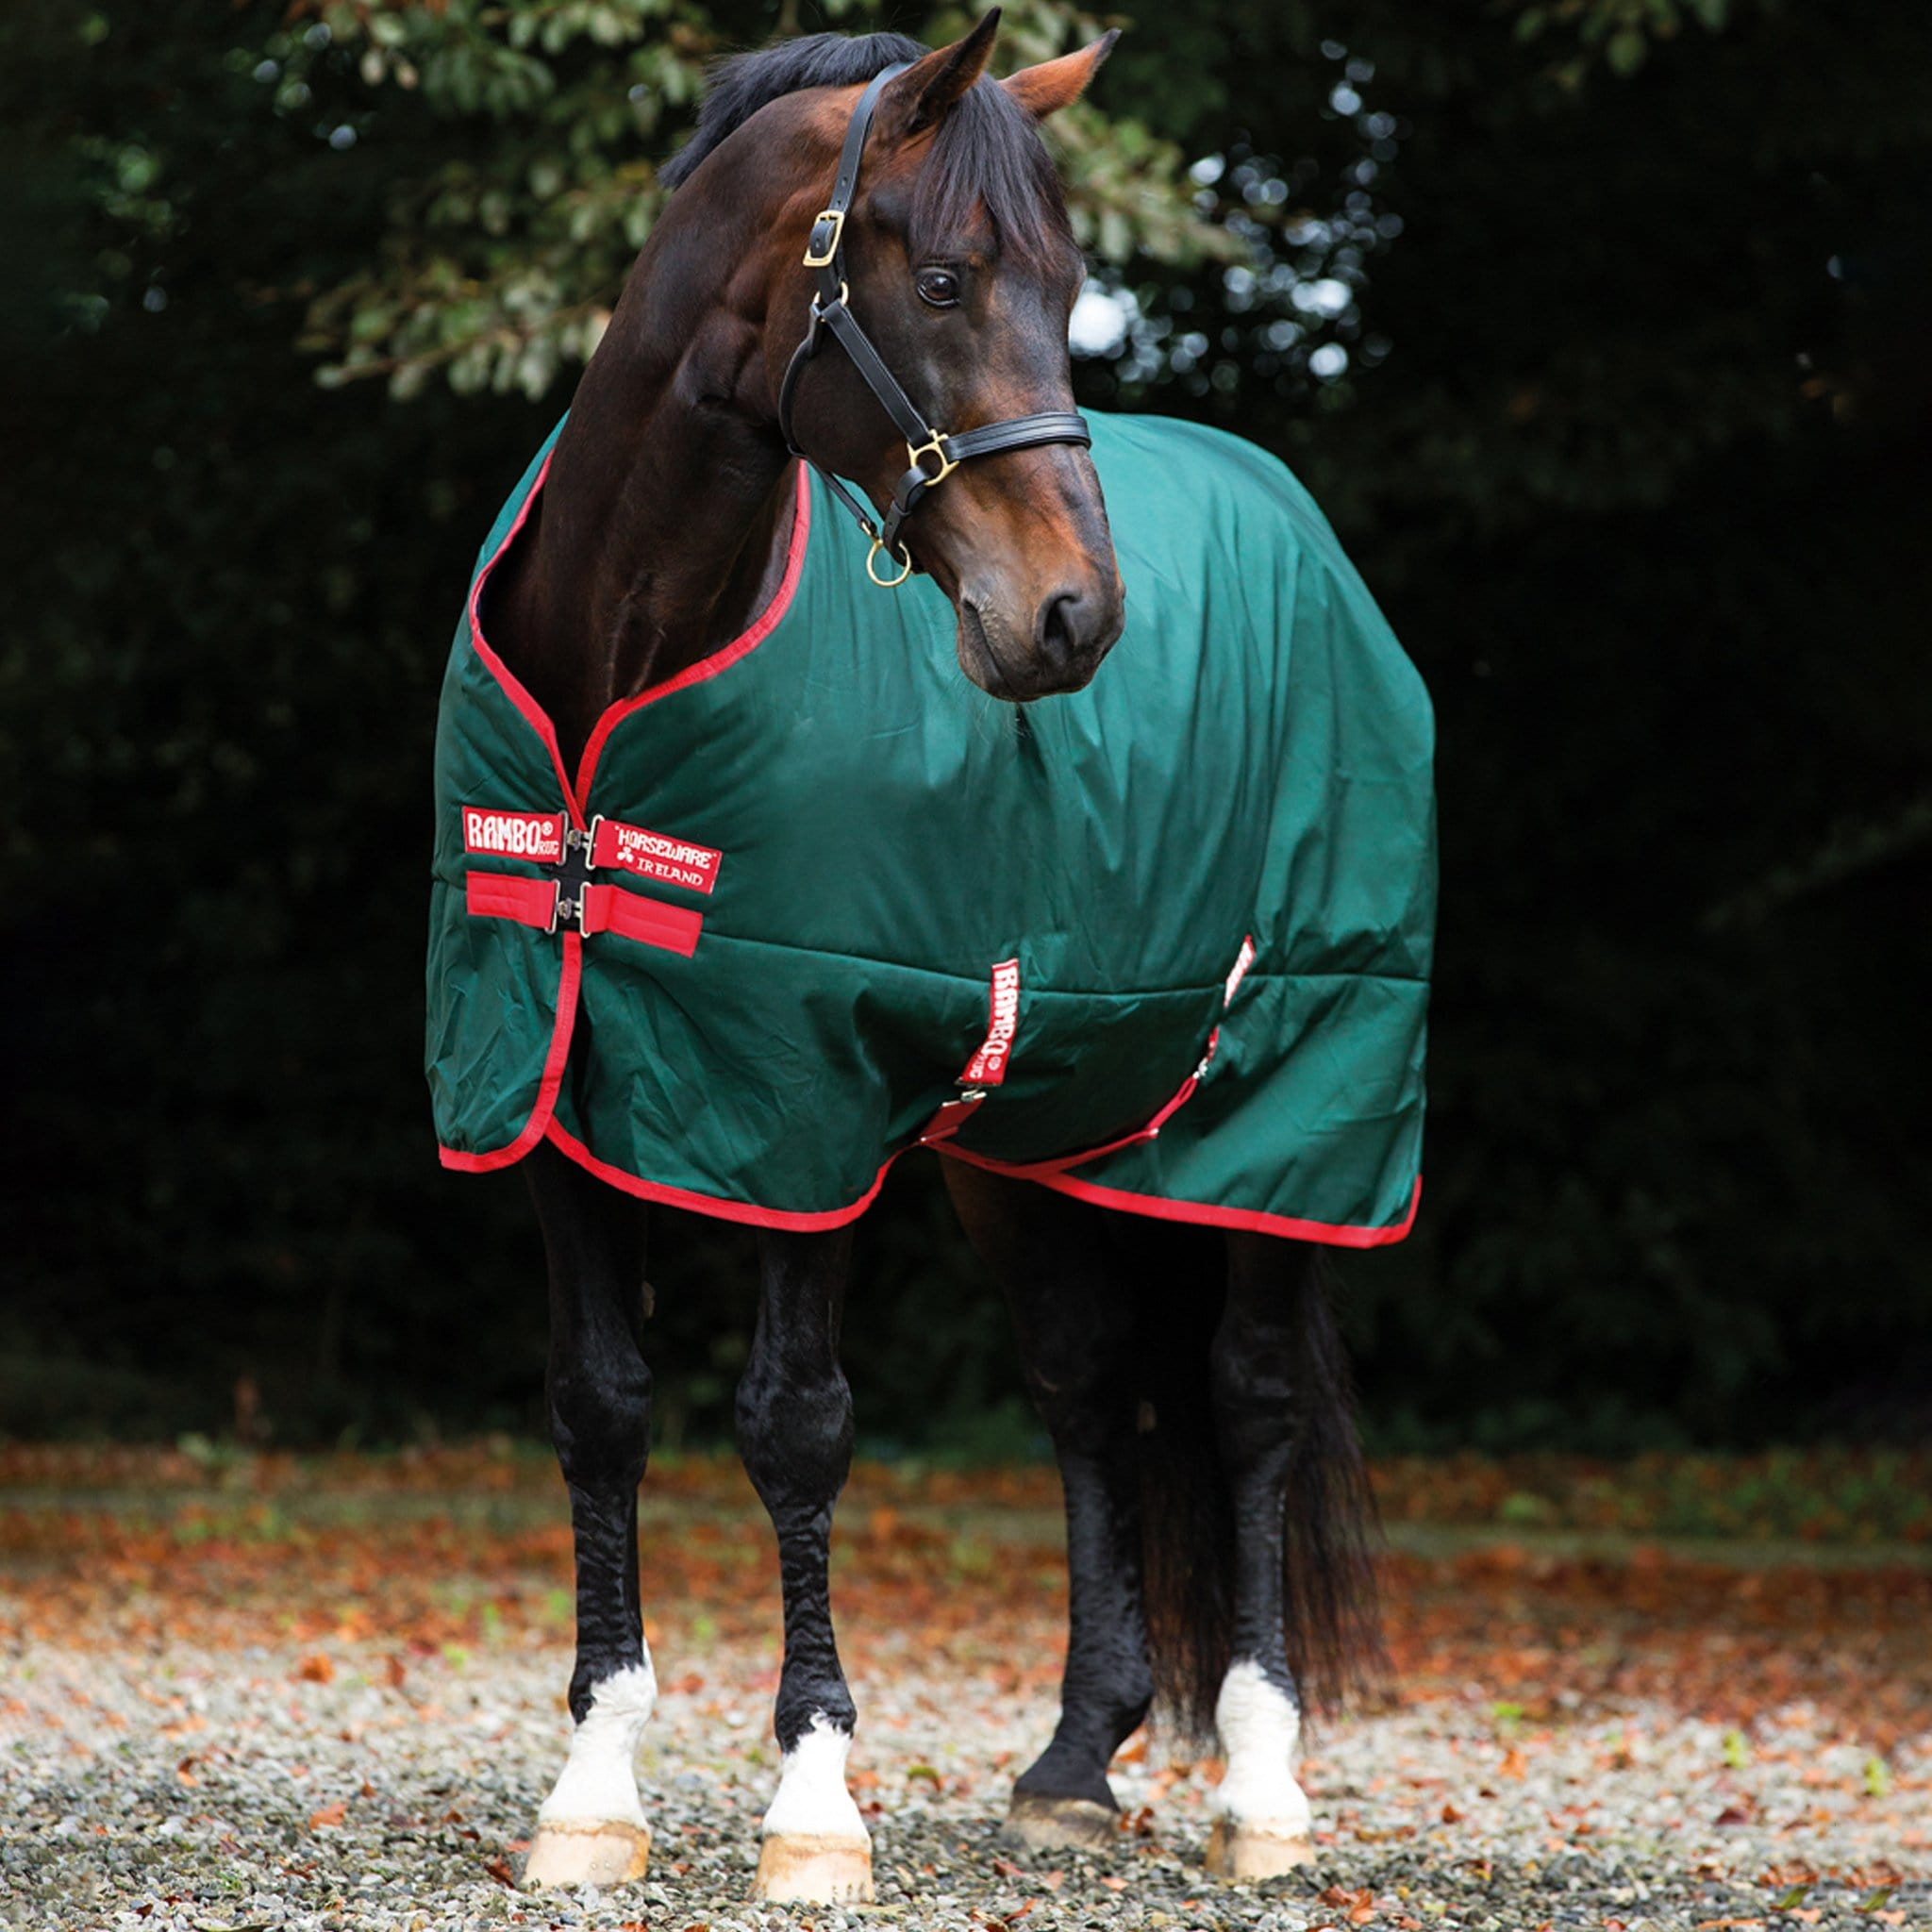 Rambo Original 0g Lite Standard Neck Turnout Rug Green AAAA03 On Bay Horse Front View.